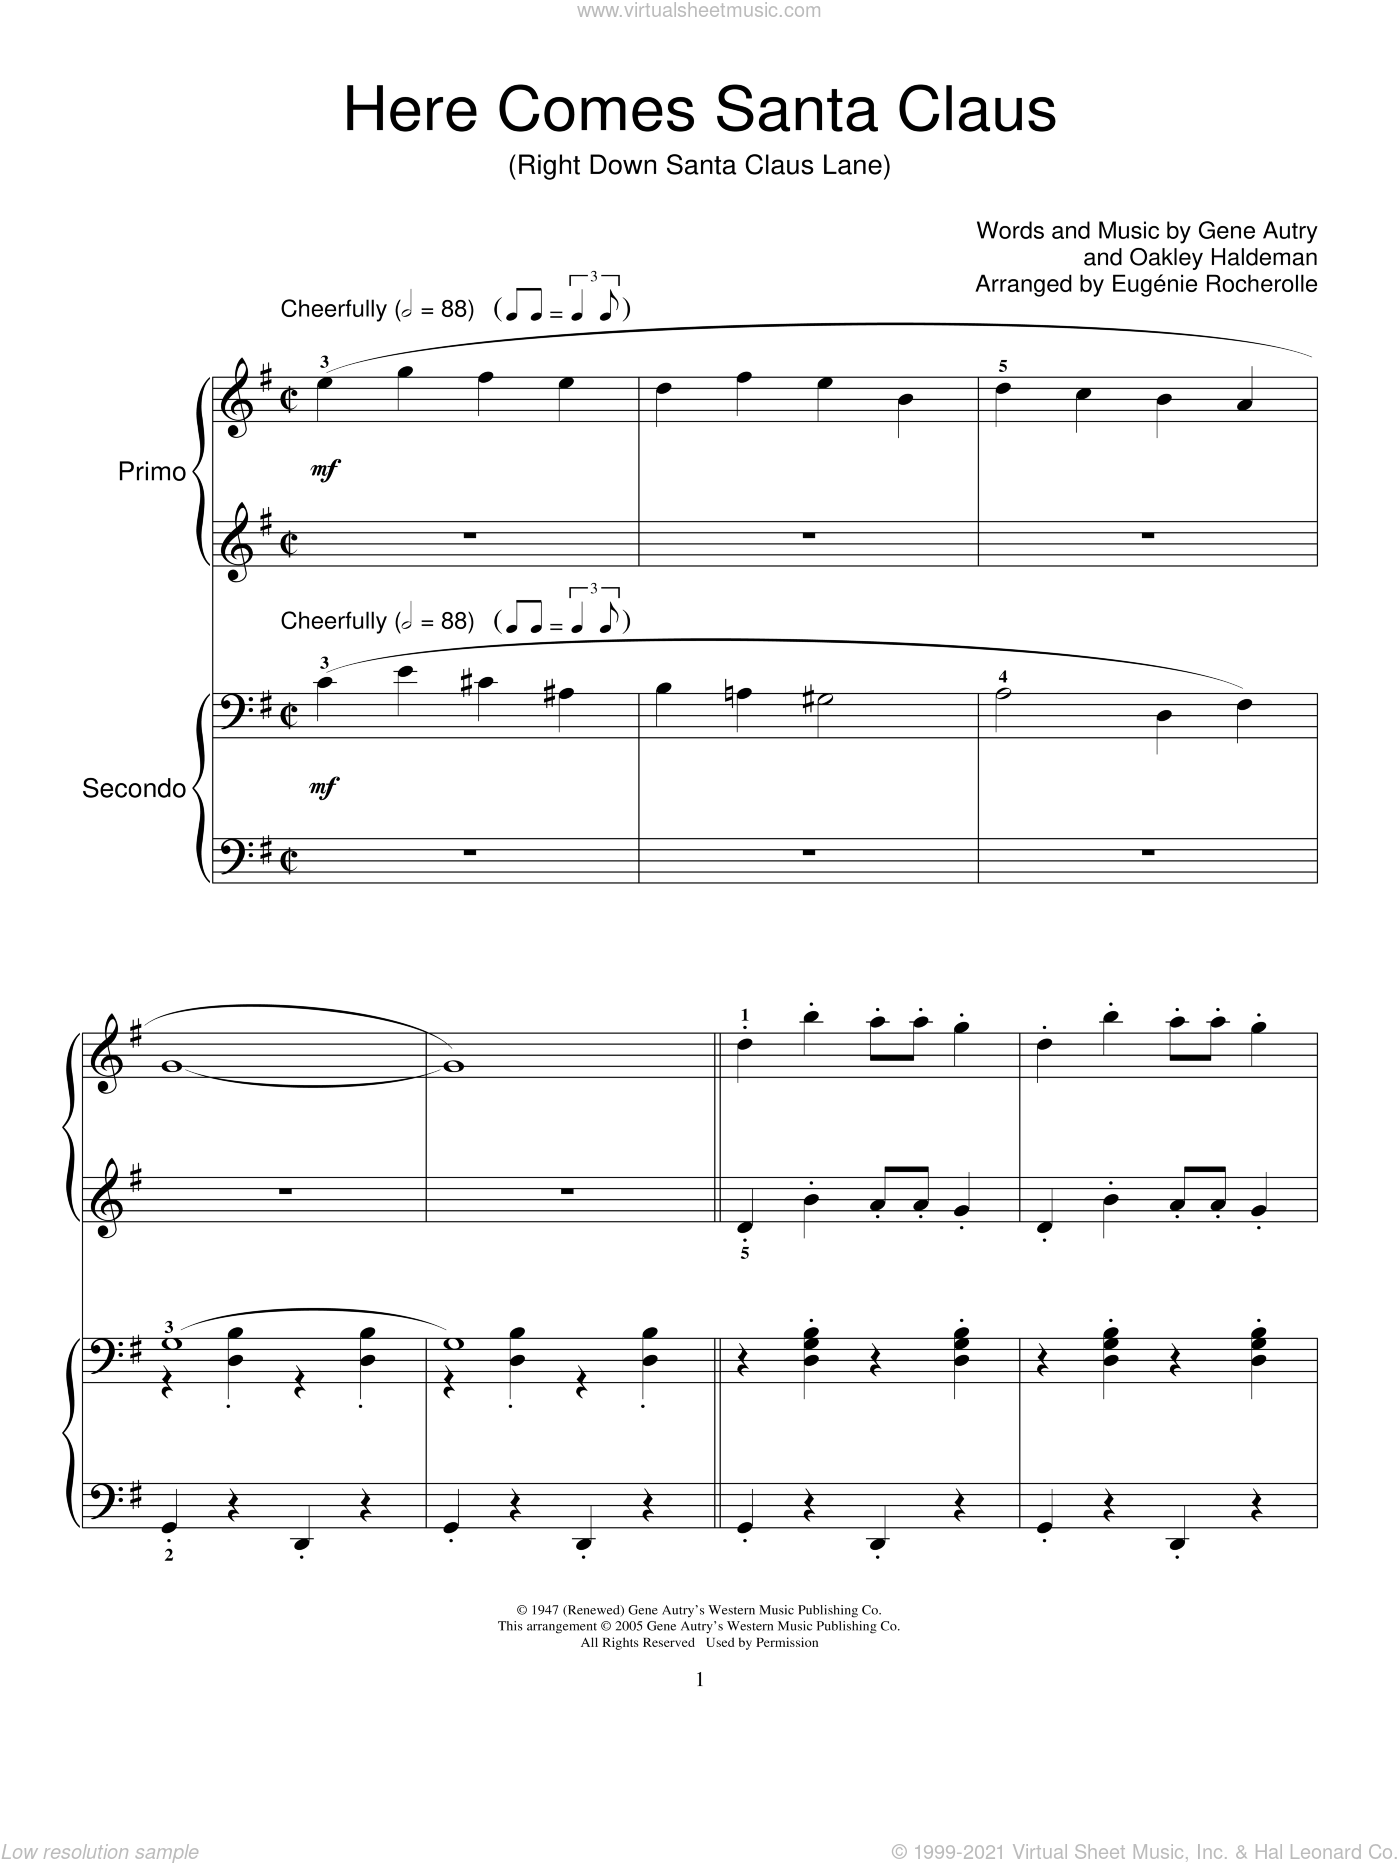 Here Comes Santa Claus (Right Down Santa Claus Lane) sheet music for piano four hands by Gene Autry, Miscellaneous and Oakley Haldeman, intermediate skill level